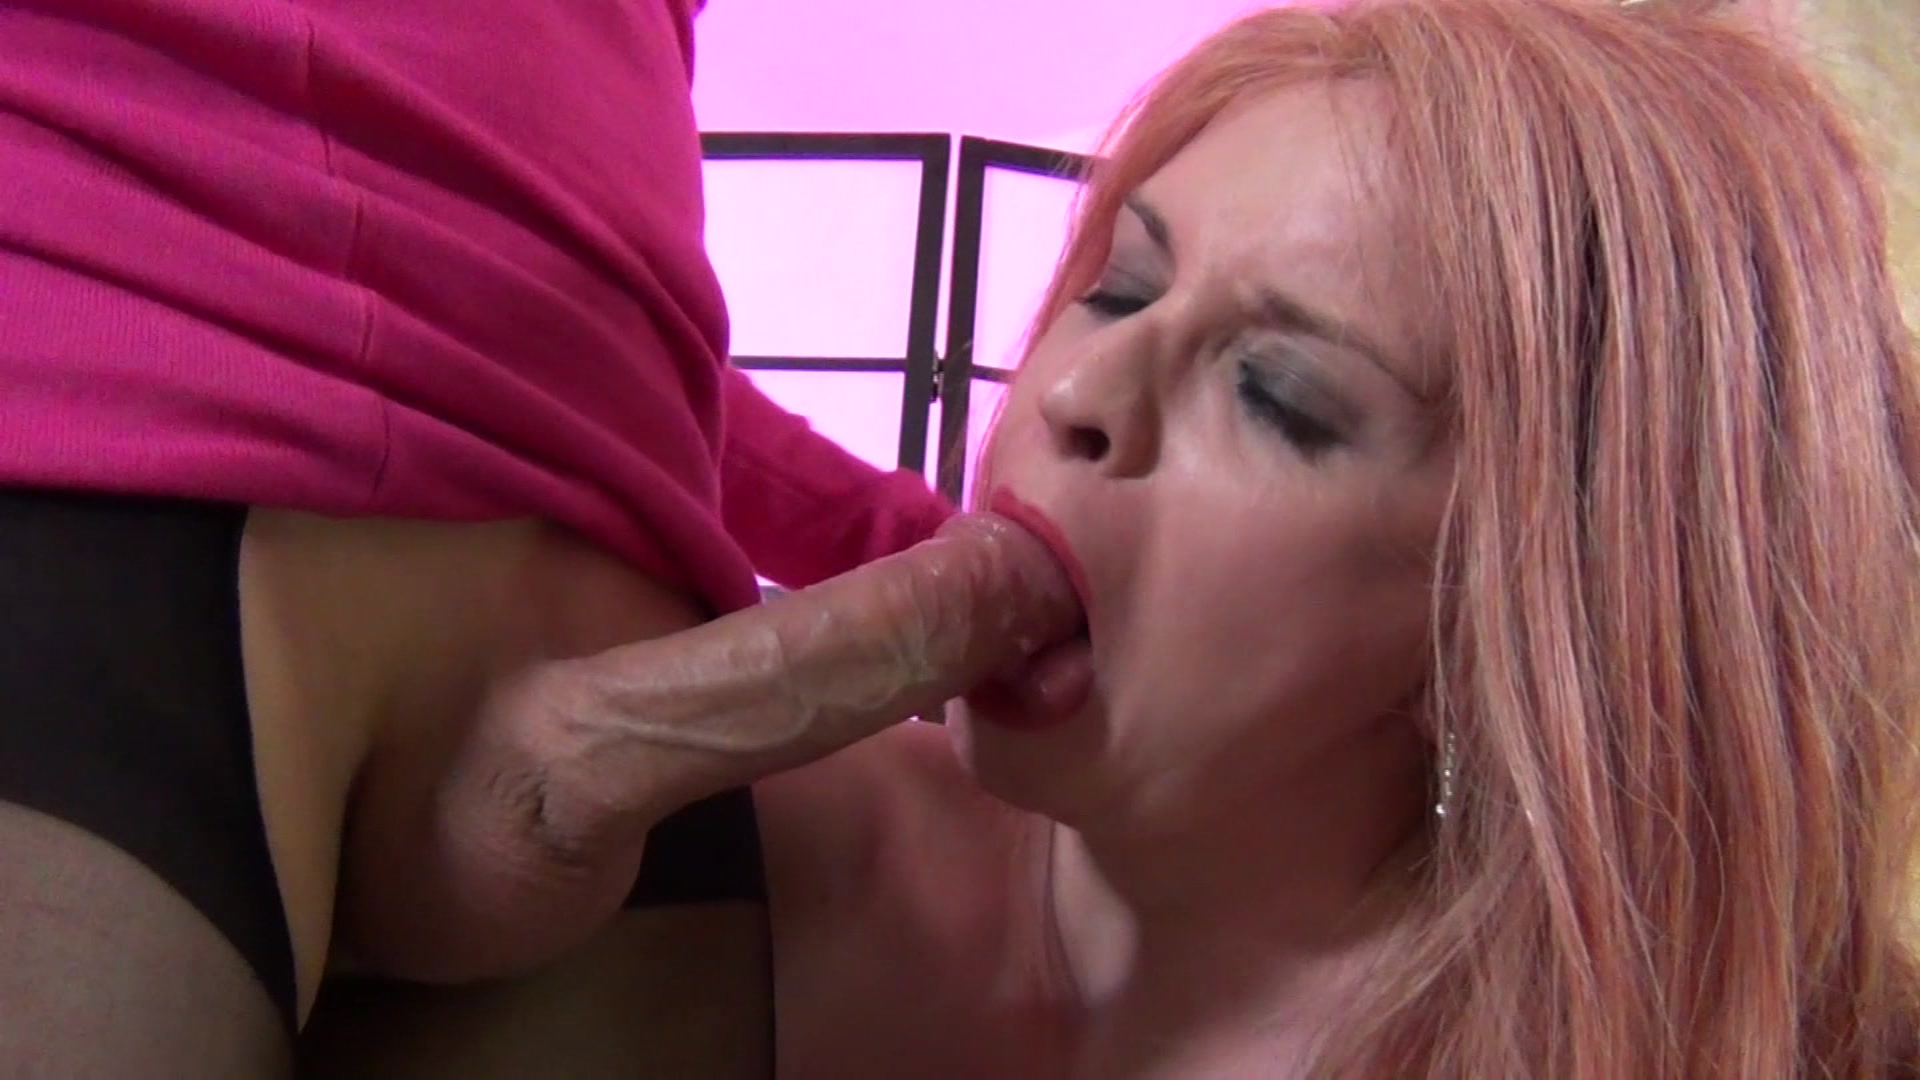 Joanna Jet Ama T-Girls 2018 Video On Demand Adult-1560